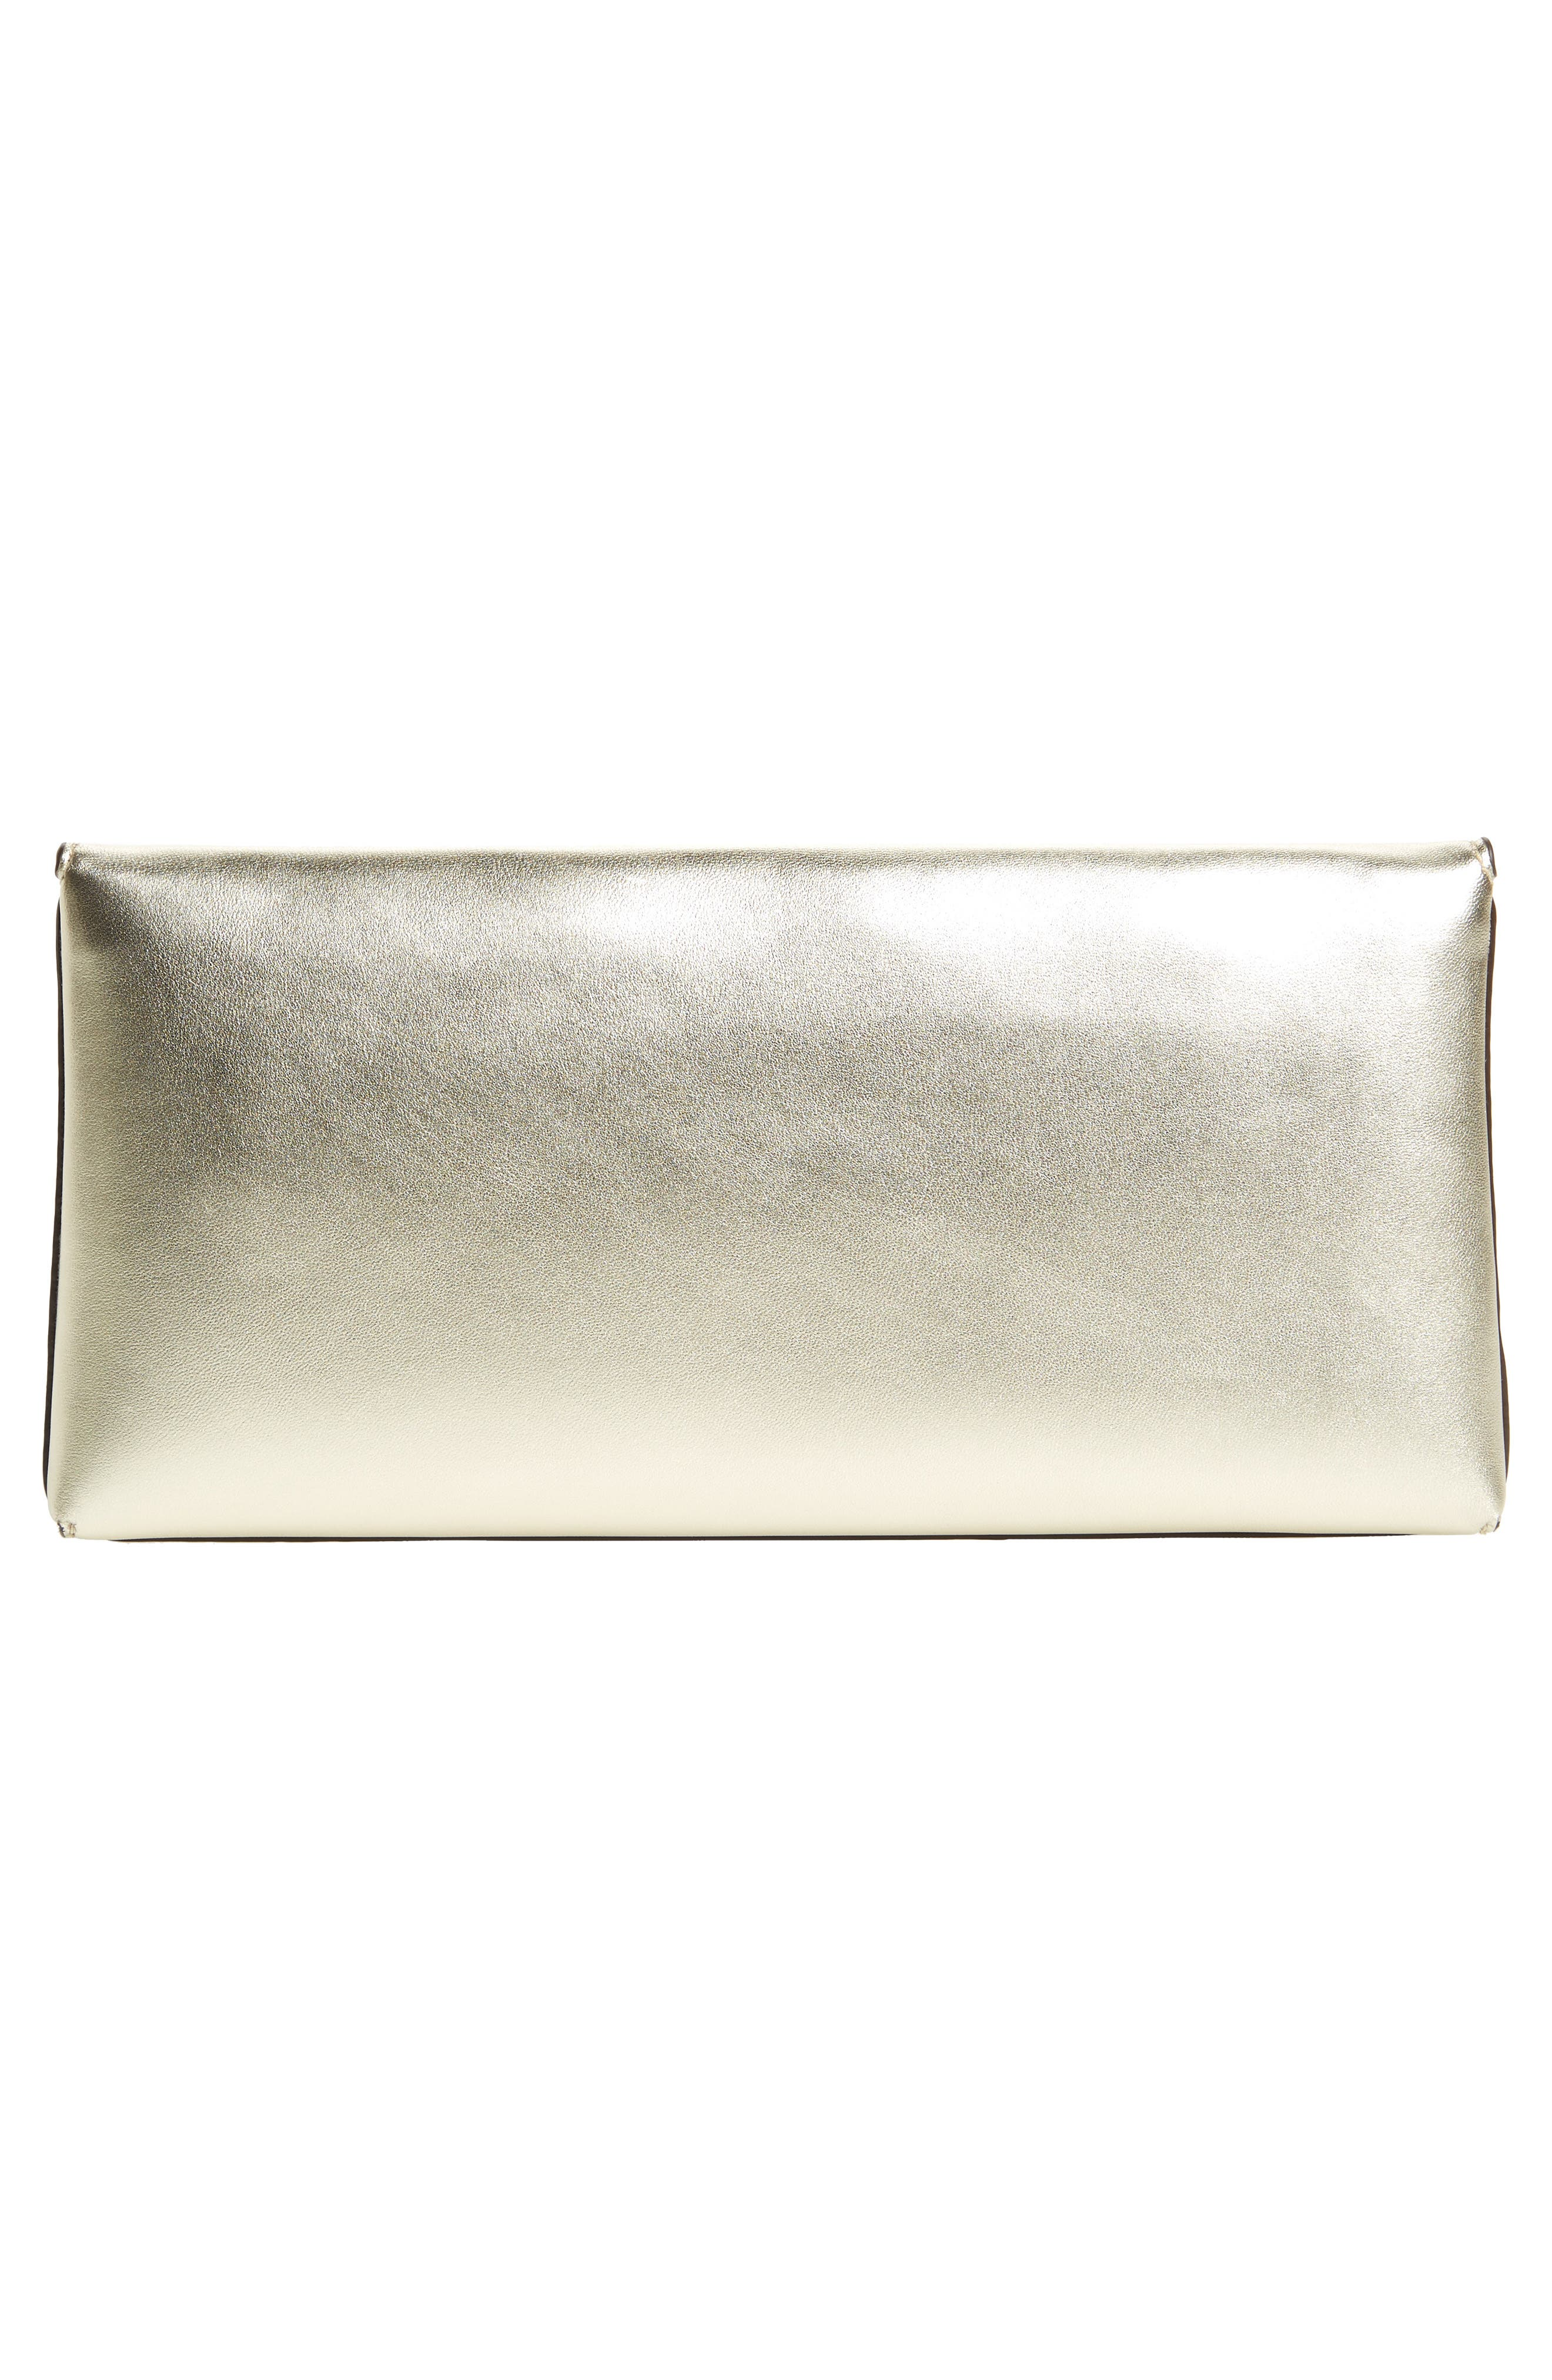 Miller Leather Clutch,                             Alternate thumbnail 3, color,                             Gold